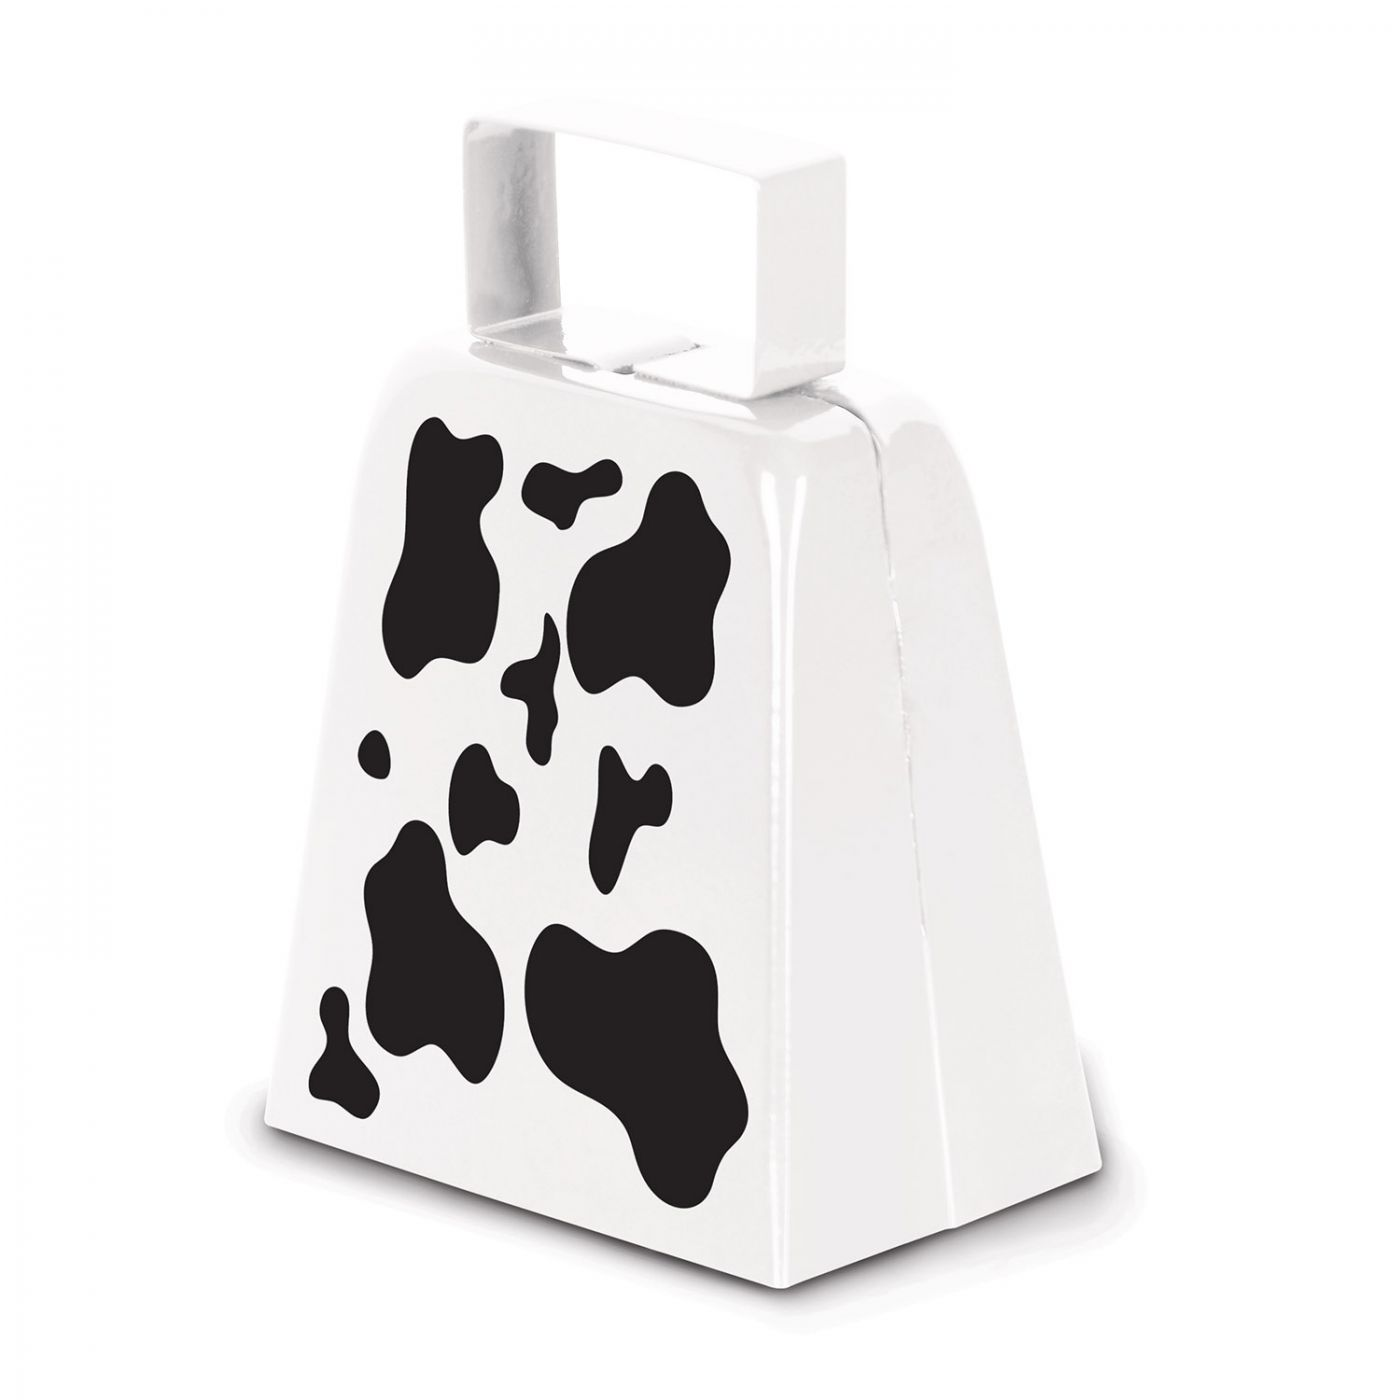 Cow Print Cowbell image